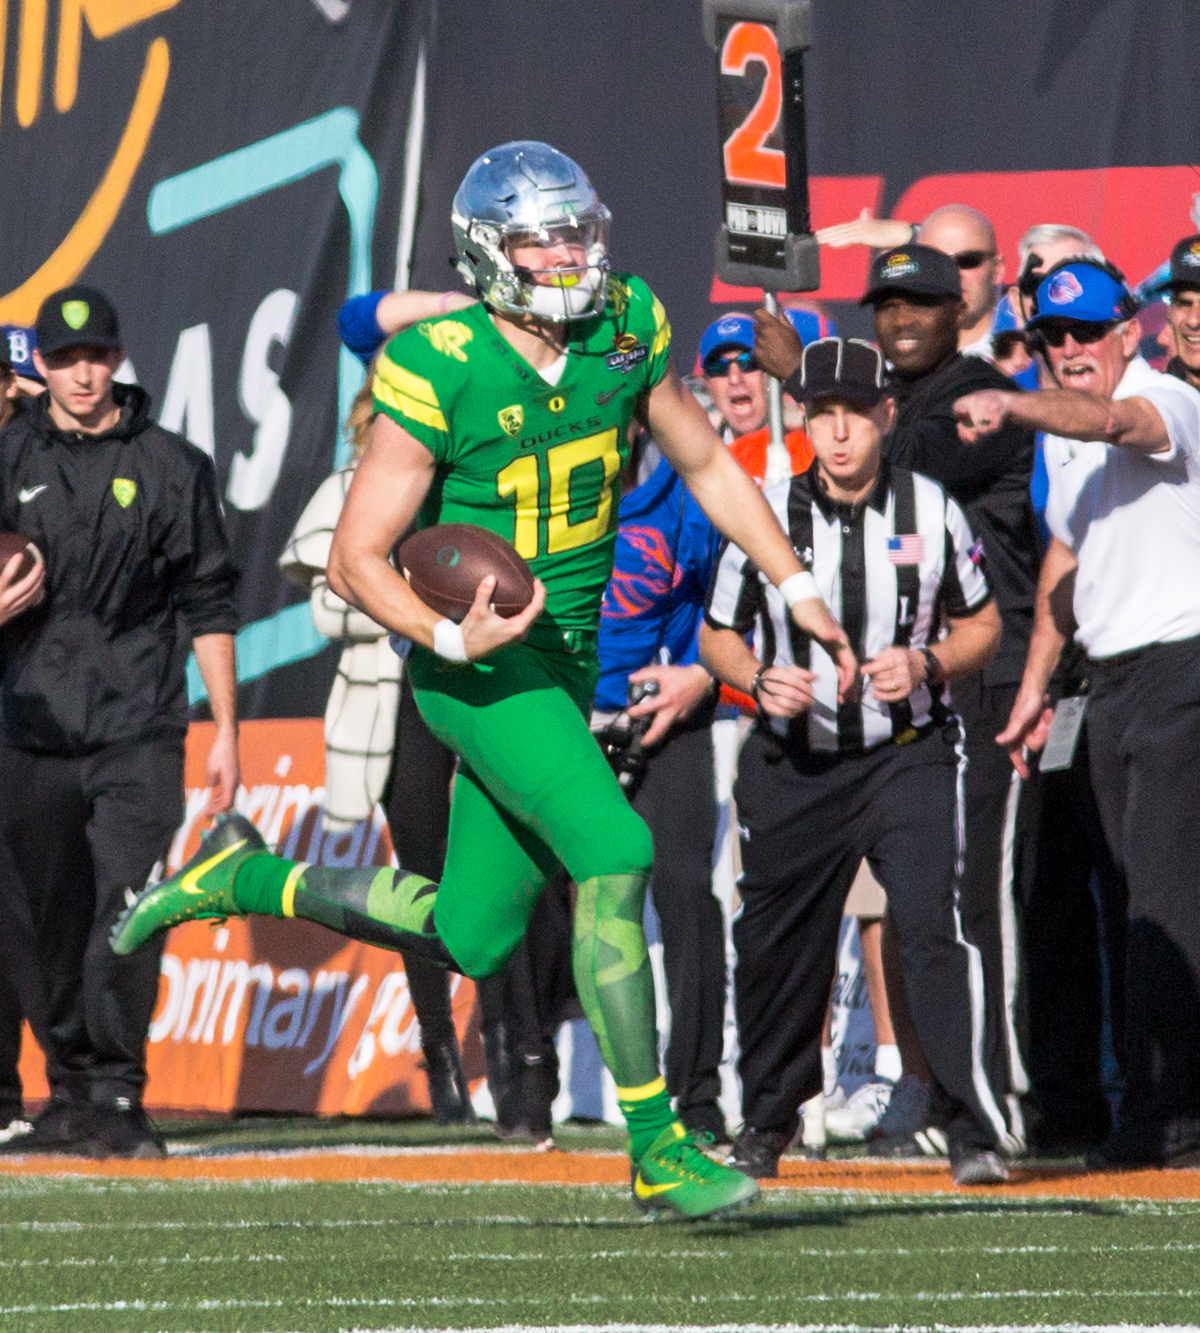 Oregon quarterback Justin Herbert runs the ball. The Boise State Broncos defeated the Oregon Ducks 38 to 28 in the 2017 Las Vegas Bowl at Sam Boyd Stadium in Las Vegas, Nevada on Saturday December 17, 2017. The Las Vegas Bowl served as the first test for Oregon's new Head Coach Mario Cristobal following the loss of former Head Coach Willie Taggart to Florida State University earlier this month. Photo by Ben Lonergan, Oregon News Lab